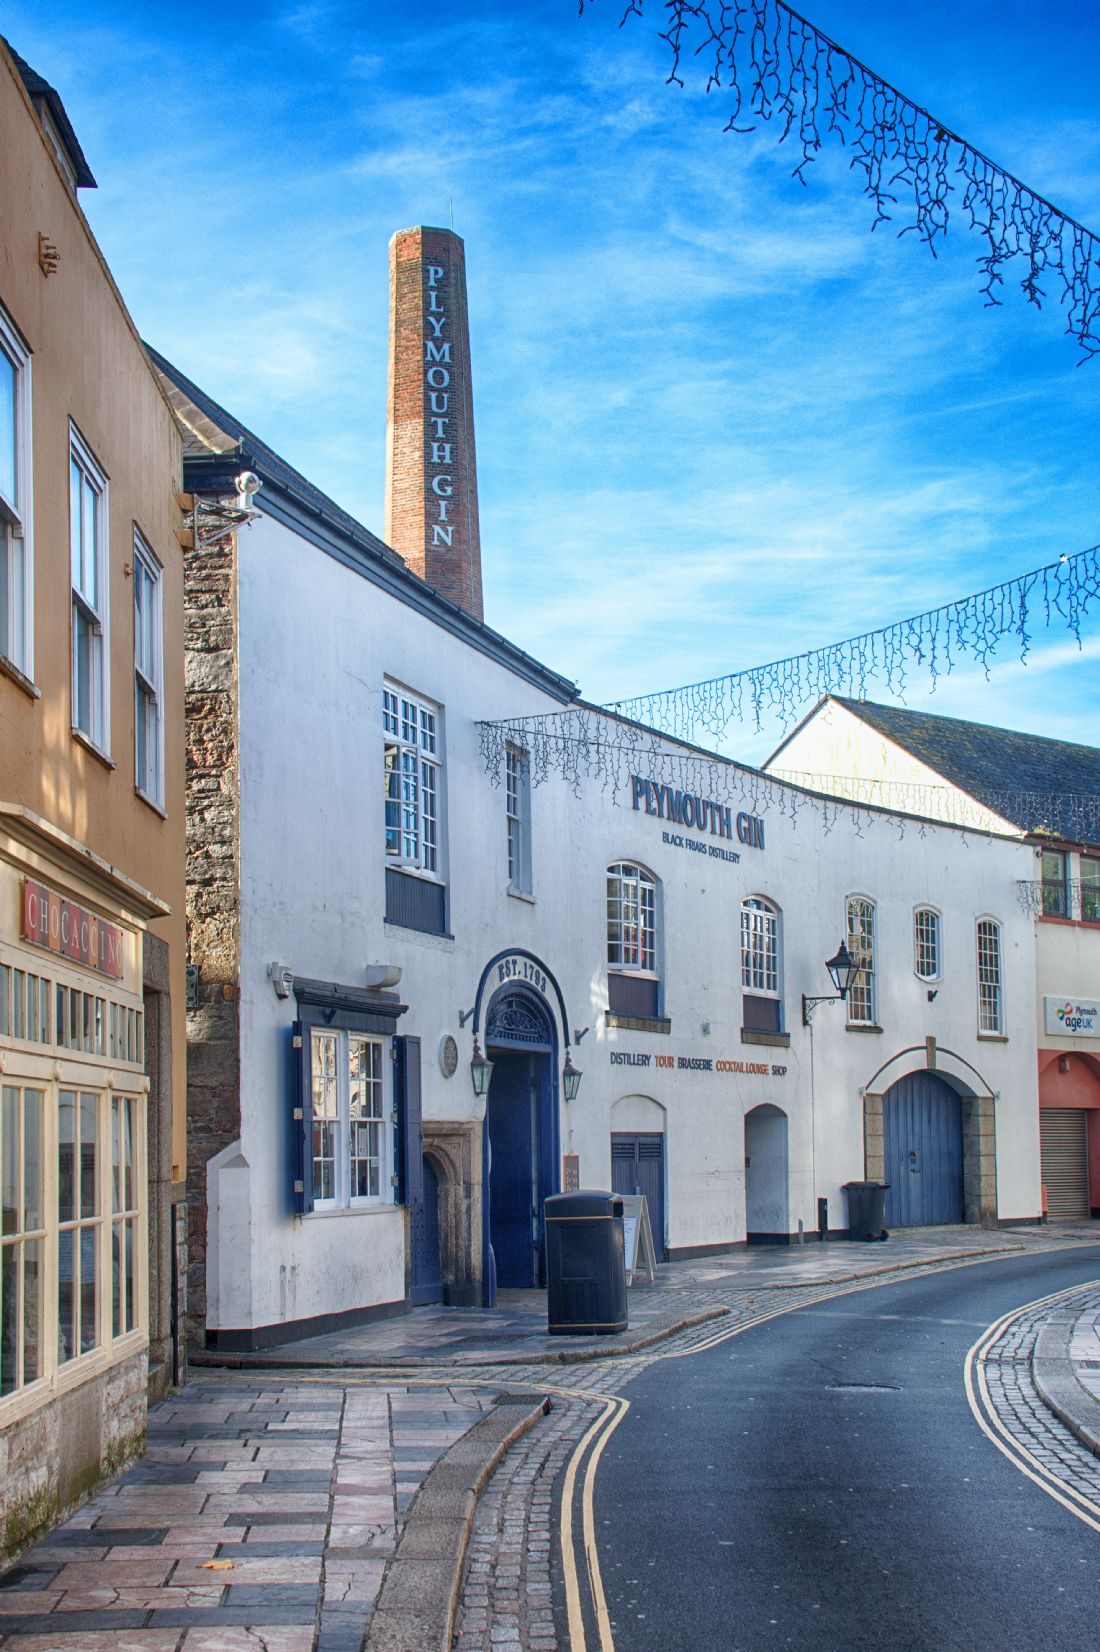 Chris Day | Plymouth Gin Distillery